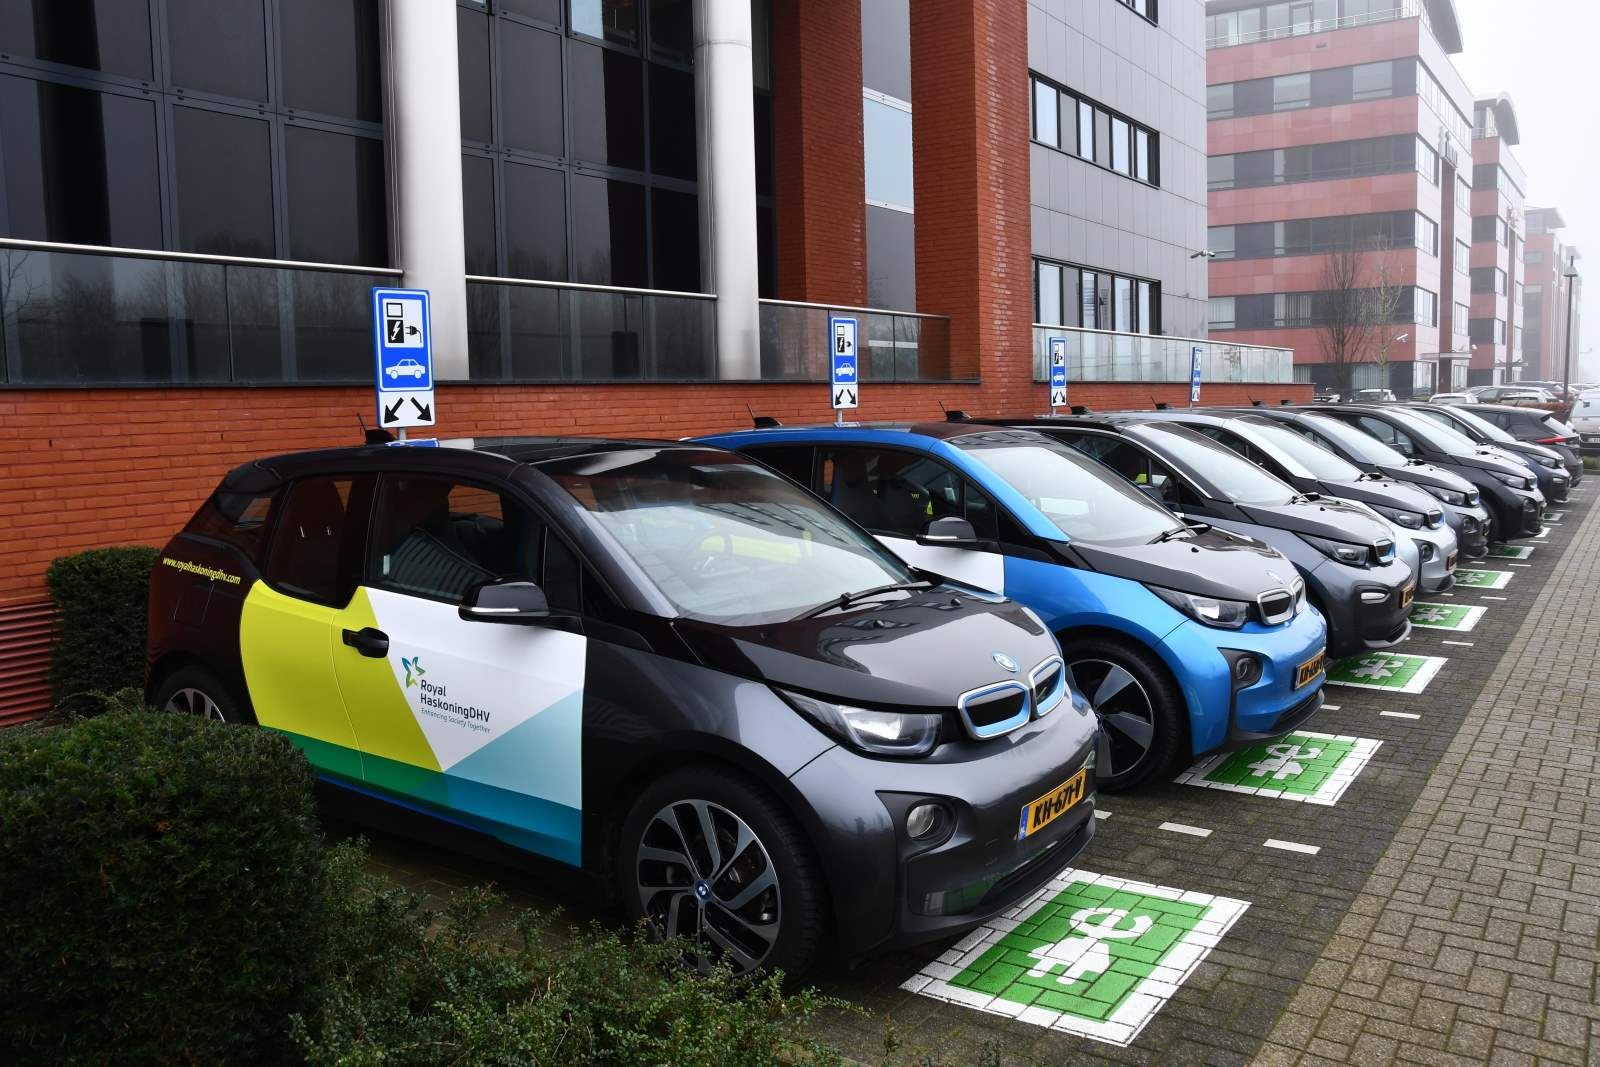 100% Electric lease fleet, Maastricht office, The Netherlands